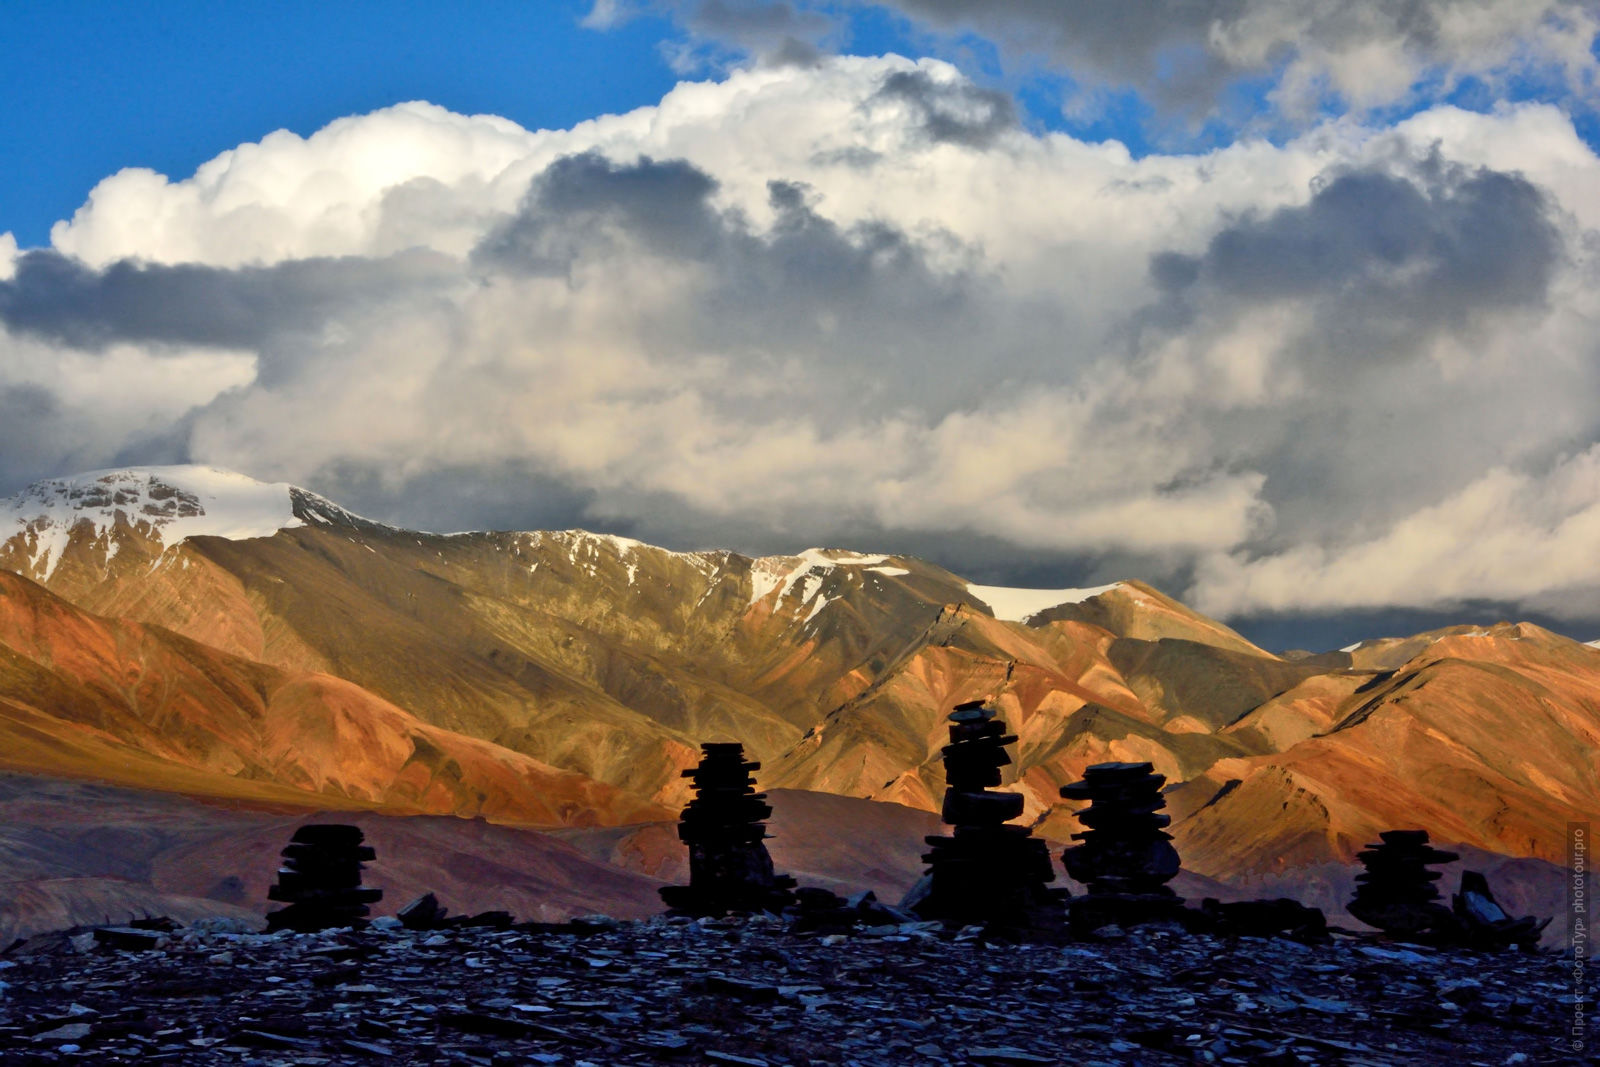 Buddhist stupas on the lake of Tso Moriri. Photo tour / tour Tibet of Lake-1: Pangong, Tso Moriri, Tso Kar, Tso Chiagar, Dance of Tsam on Lake Pangong, 19.06. - 28.06.2021.